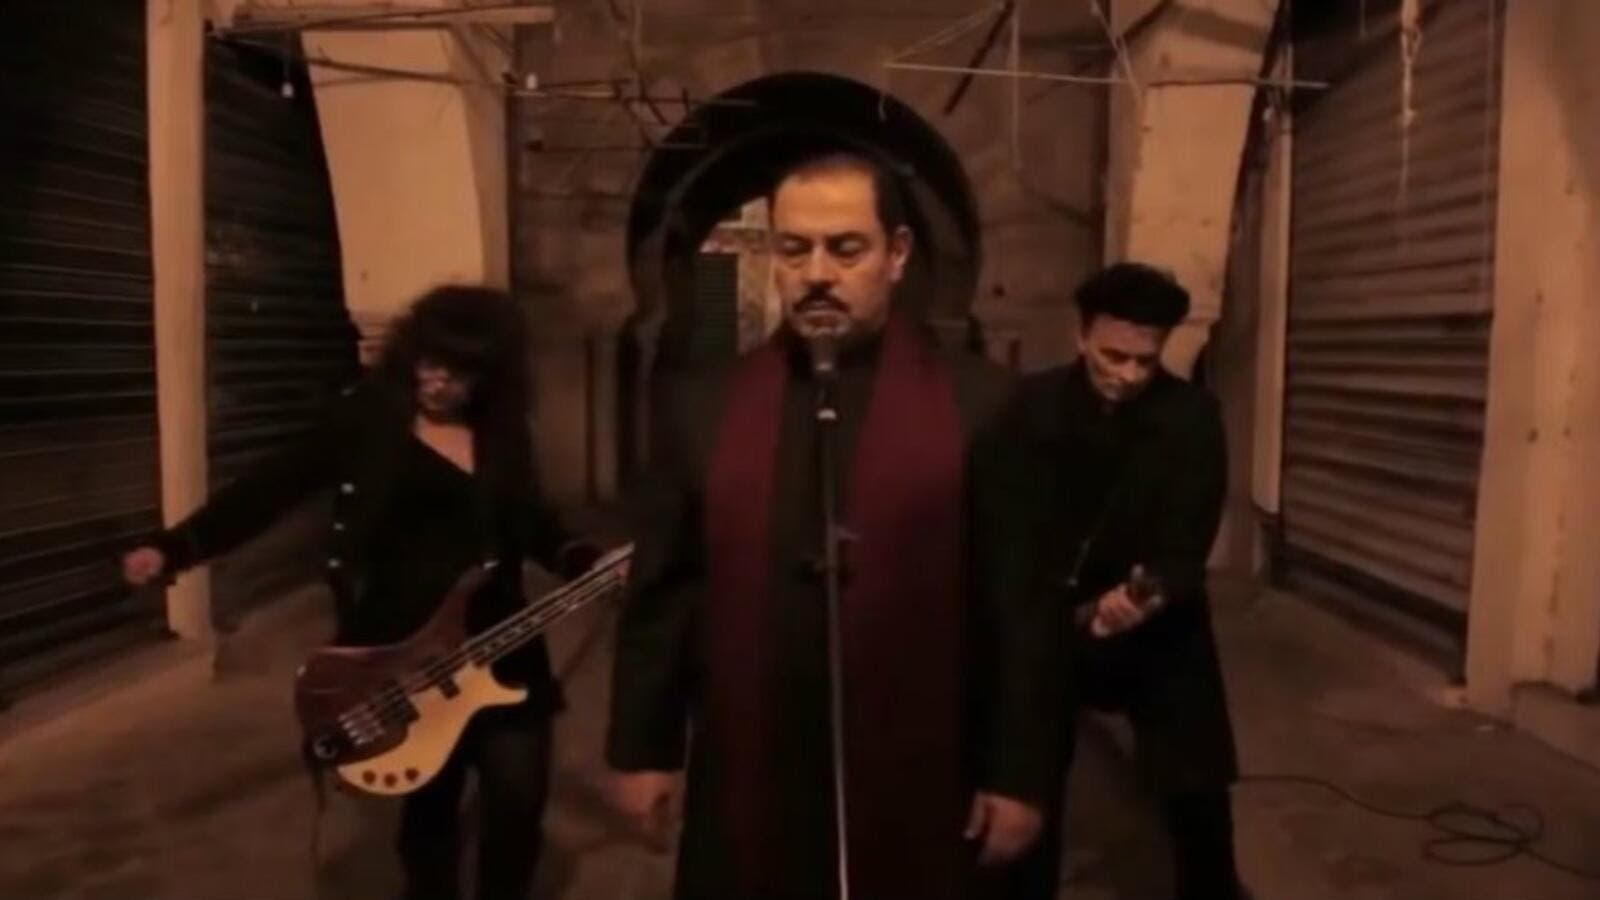 Lutfi Boshnaq (center) is the frontman for a newly formed Islamic metal band based in Tunisia. (Youtube)